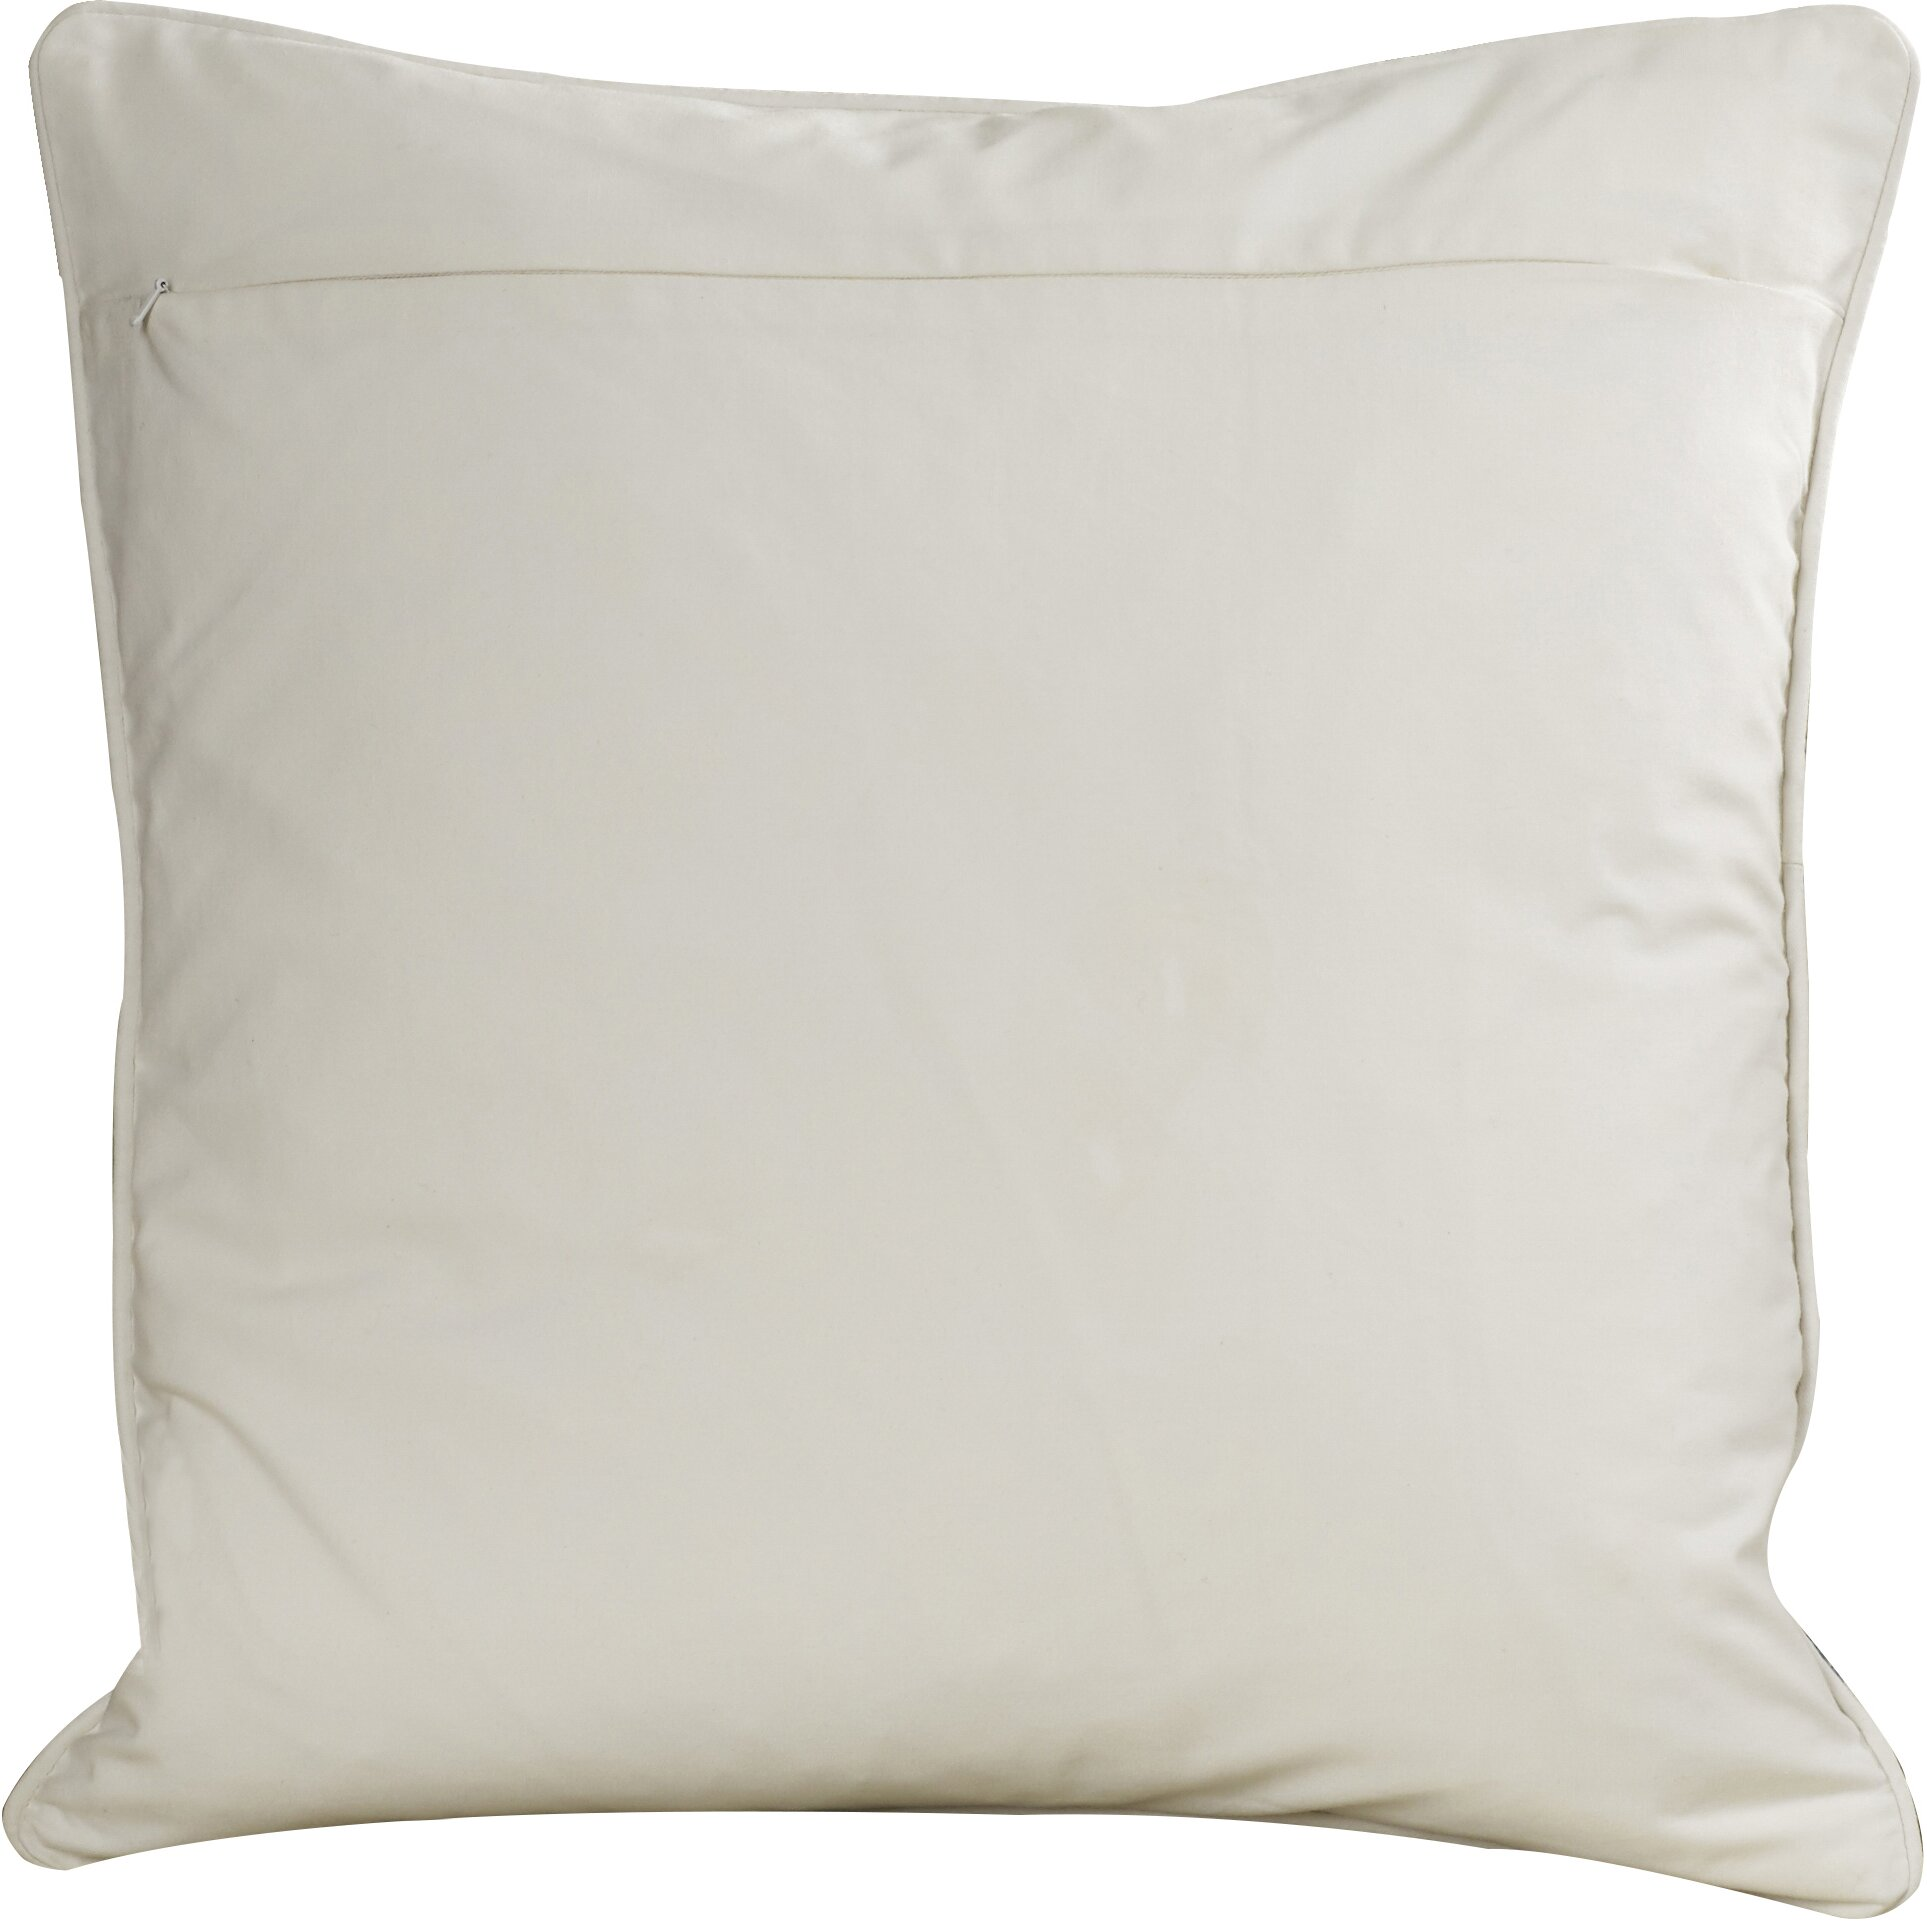 Throw Pillow Gallery : Varick Gallery Midwood Throw Pillow & Reviews Wayfair.ca